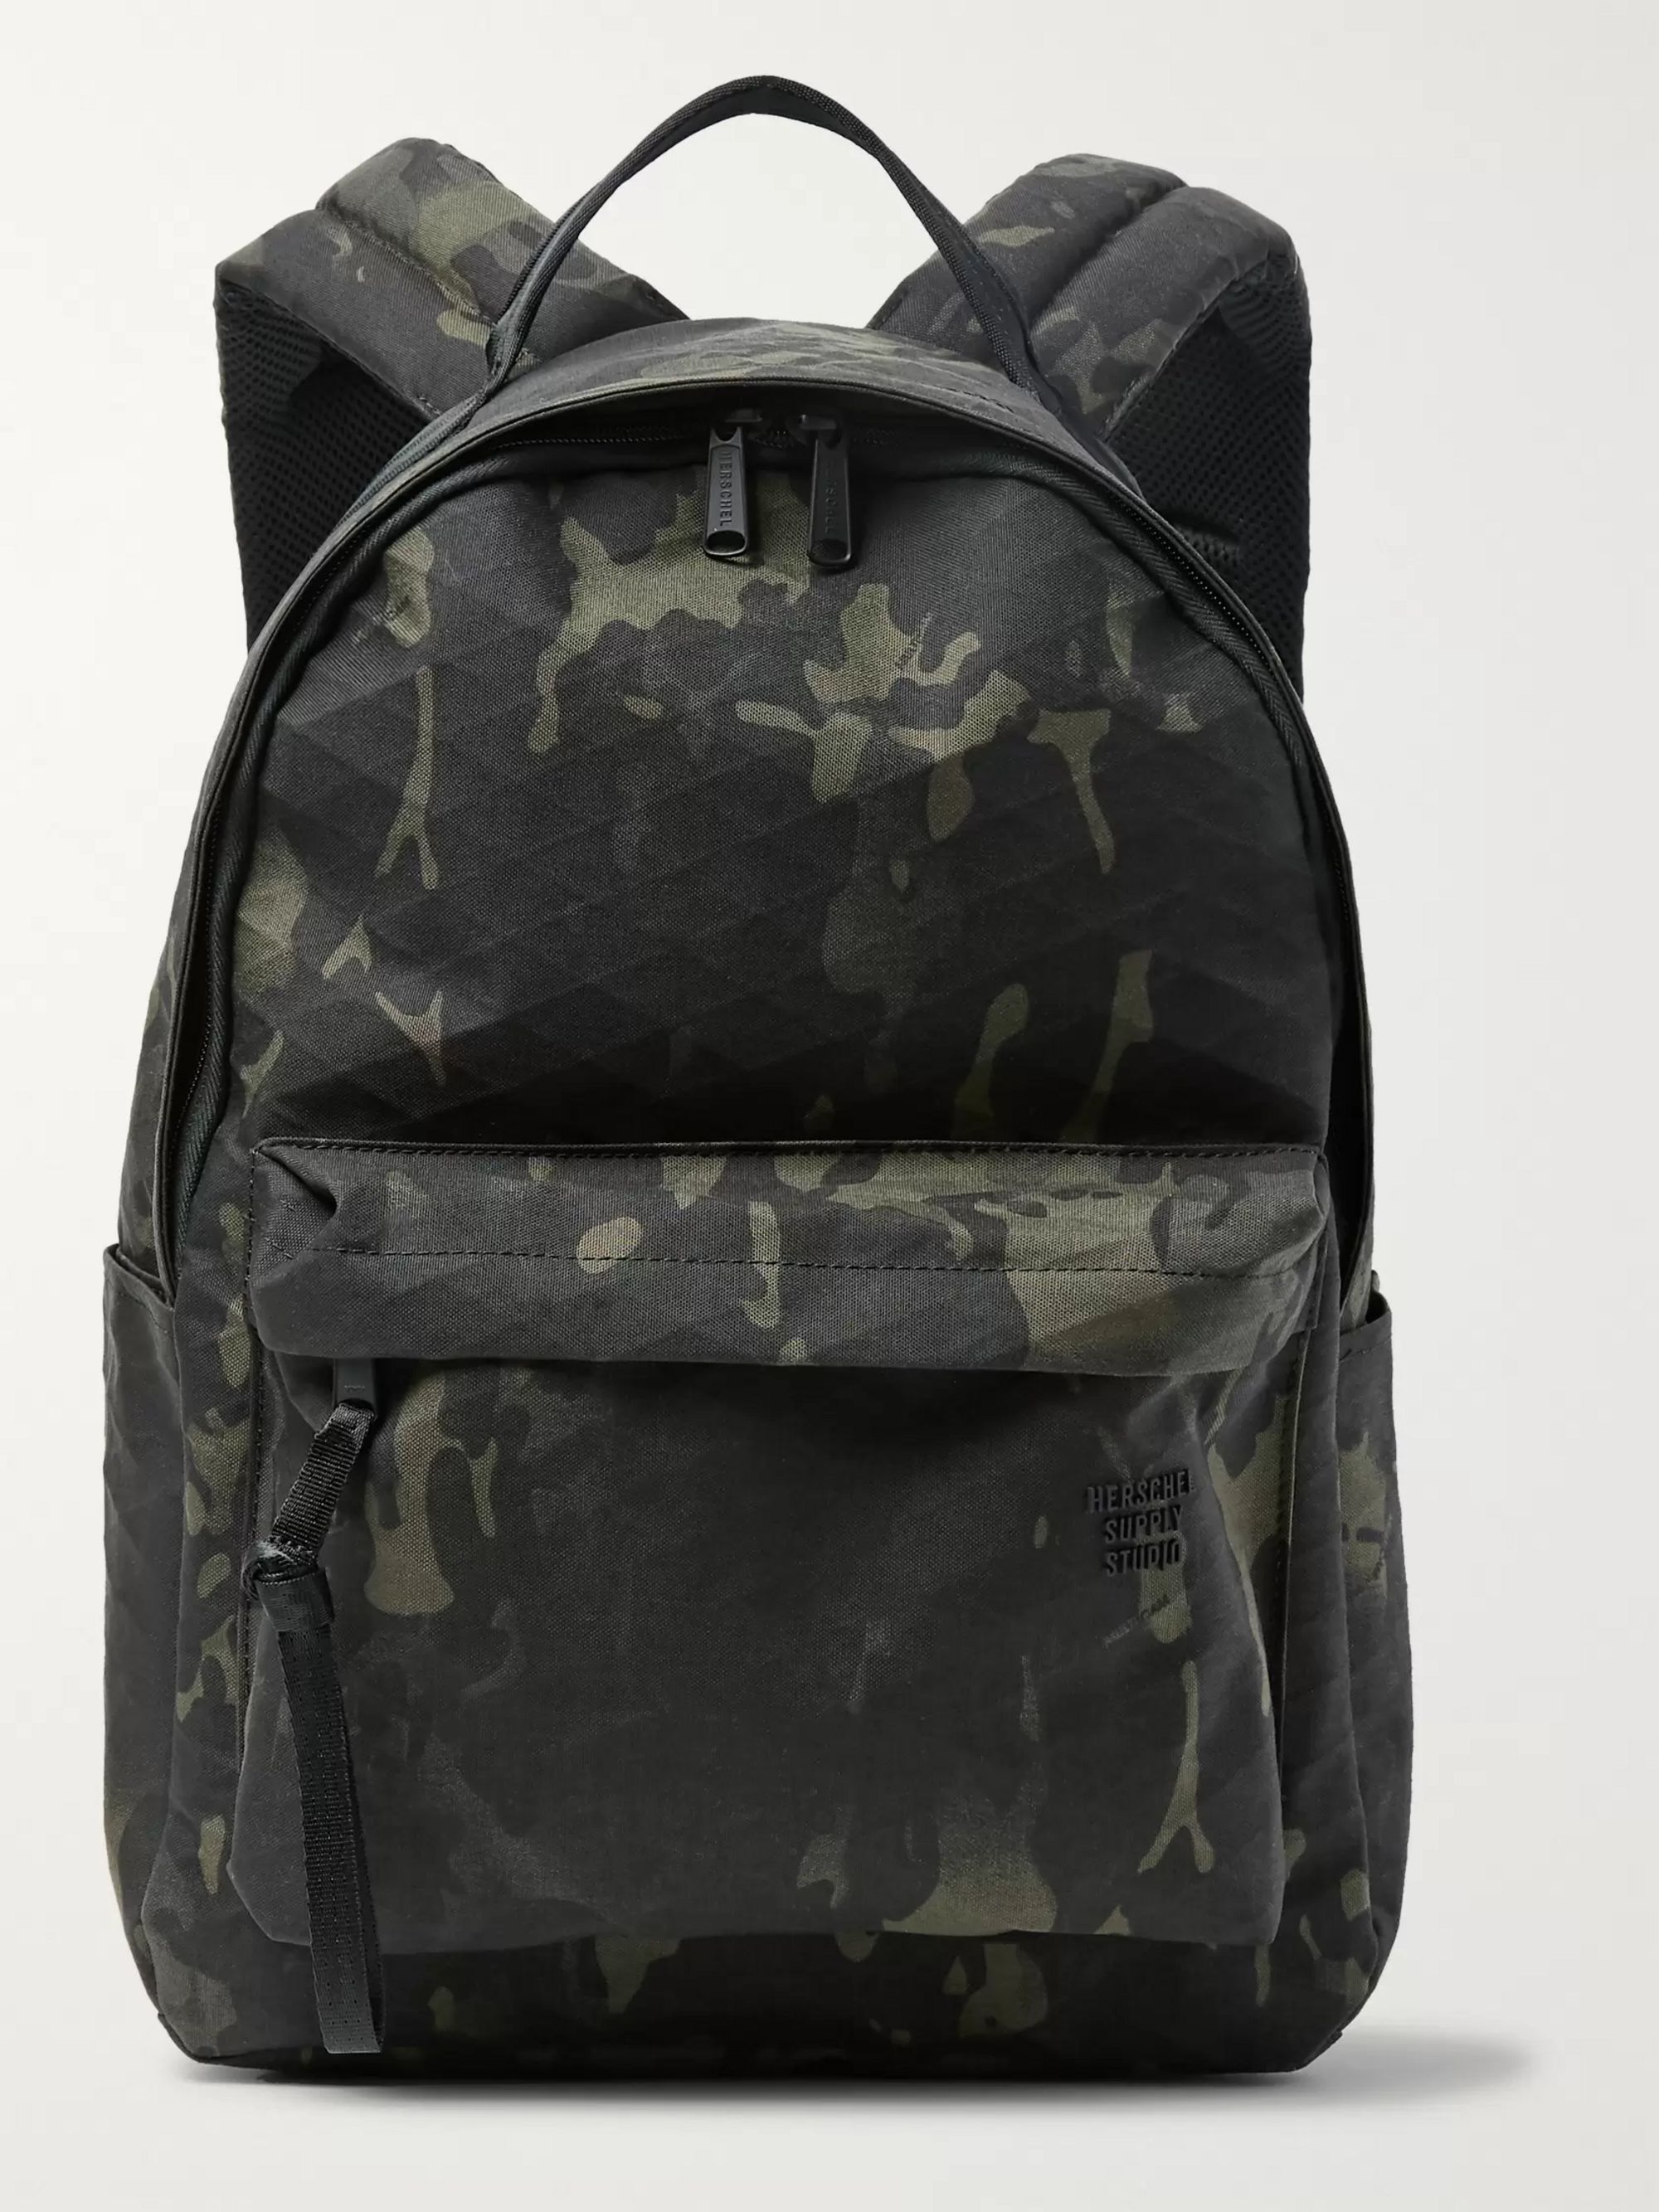 Herschel Supply Co Camouflage-Print CORDURA Backpack